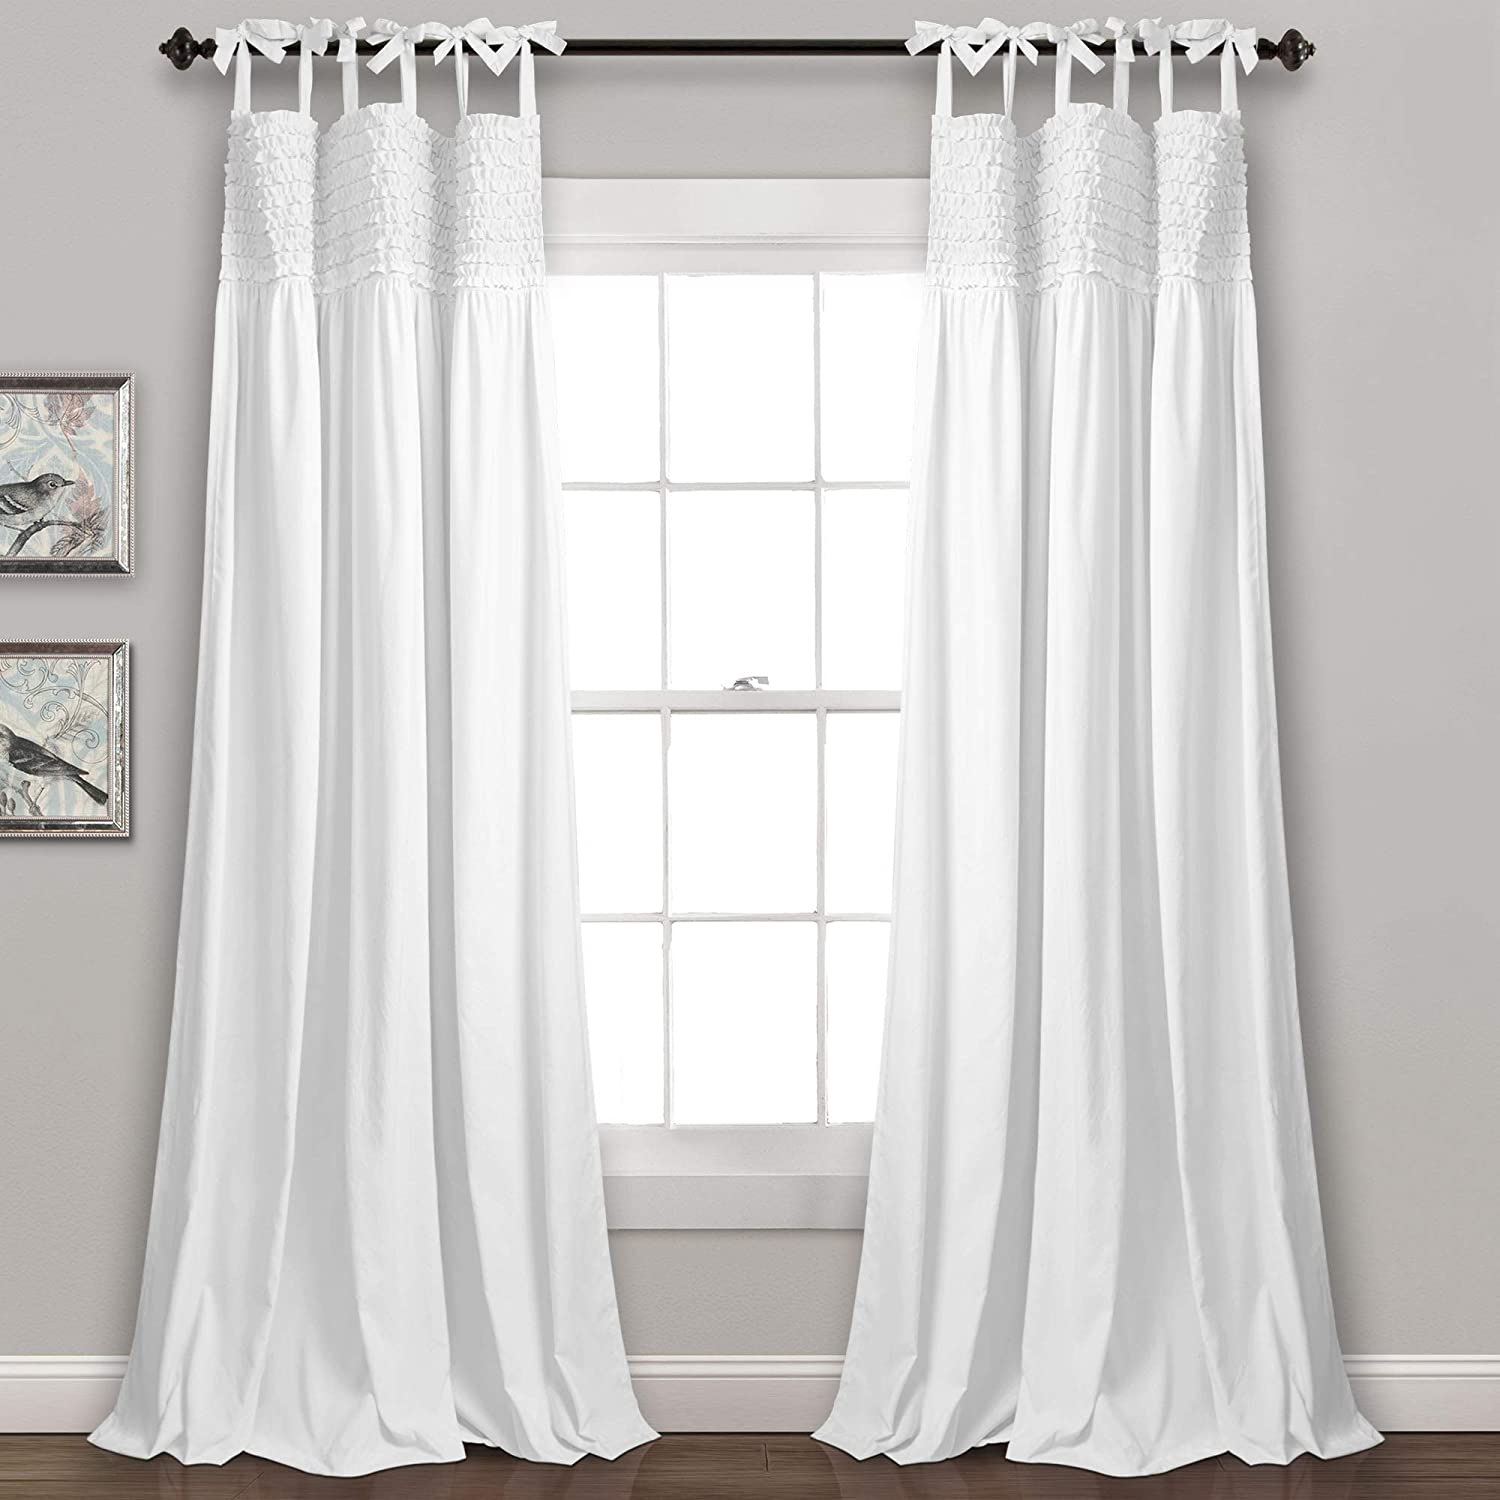 "Lush Decor, White Lydia Ruffle Window Curtain Panel Pair, 95"" x 40"", 95"" L"